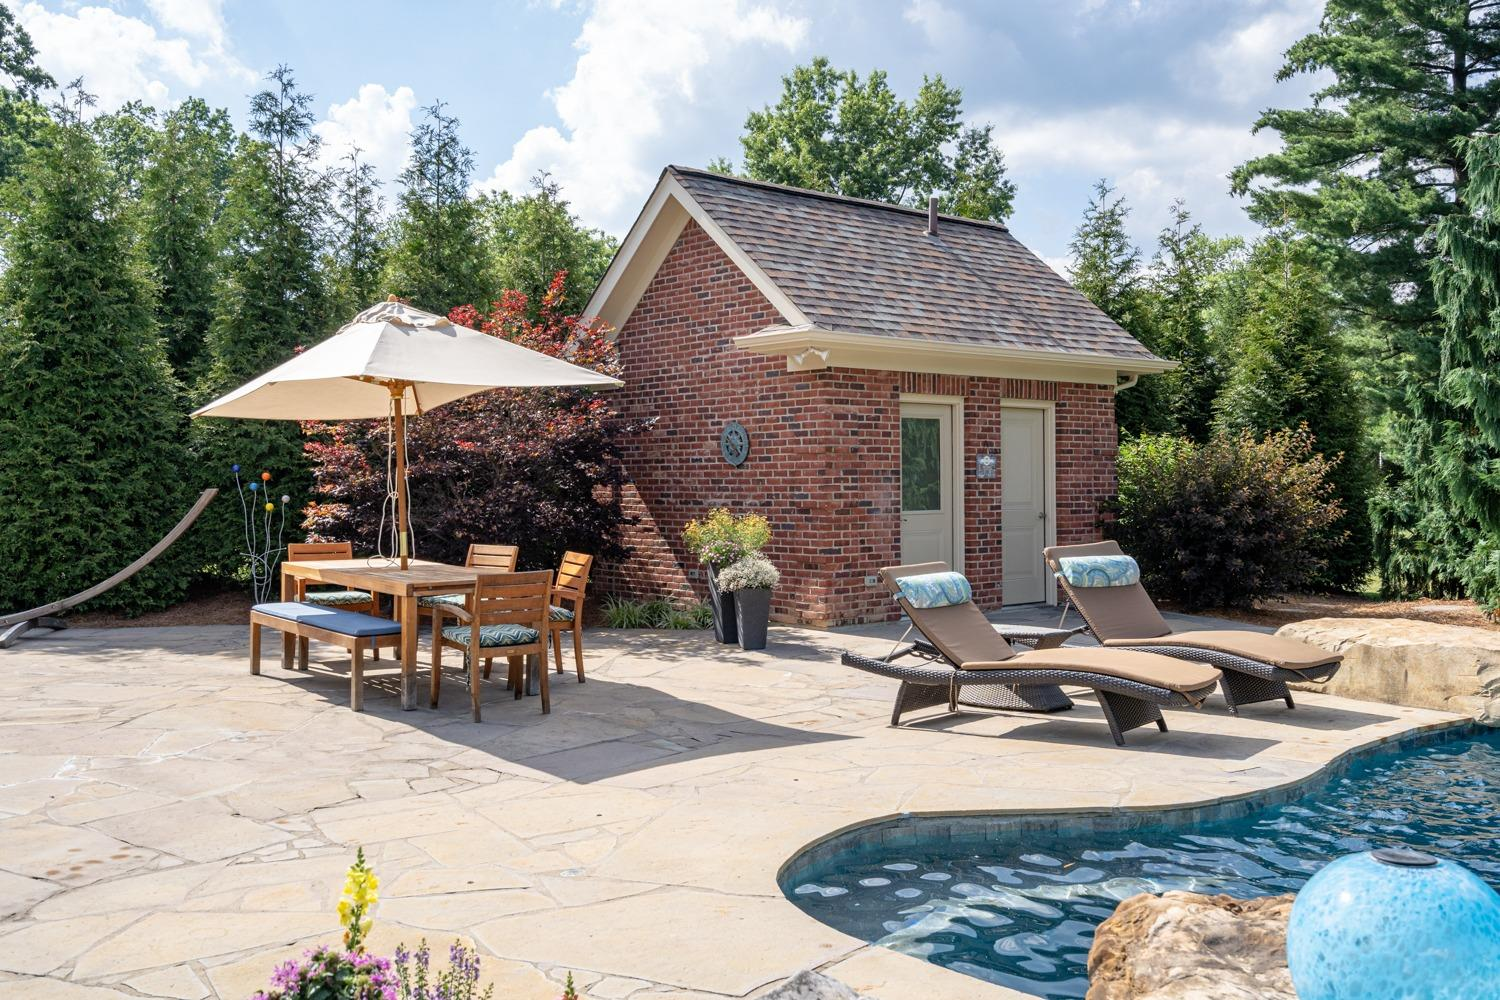 Pool house with 3 piece bathroom and pump/storage room. The pool filtration system is commercial grade and easy to operate and maintain due, in part, to a UV filtration system and 2 chlorinator towers.